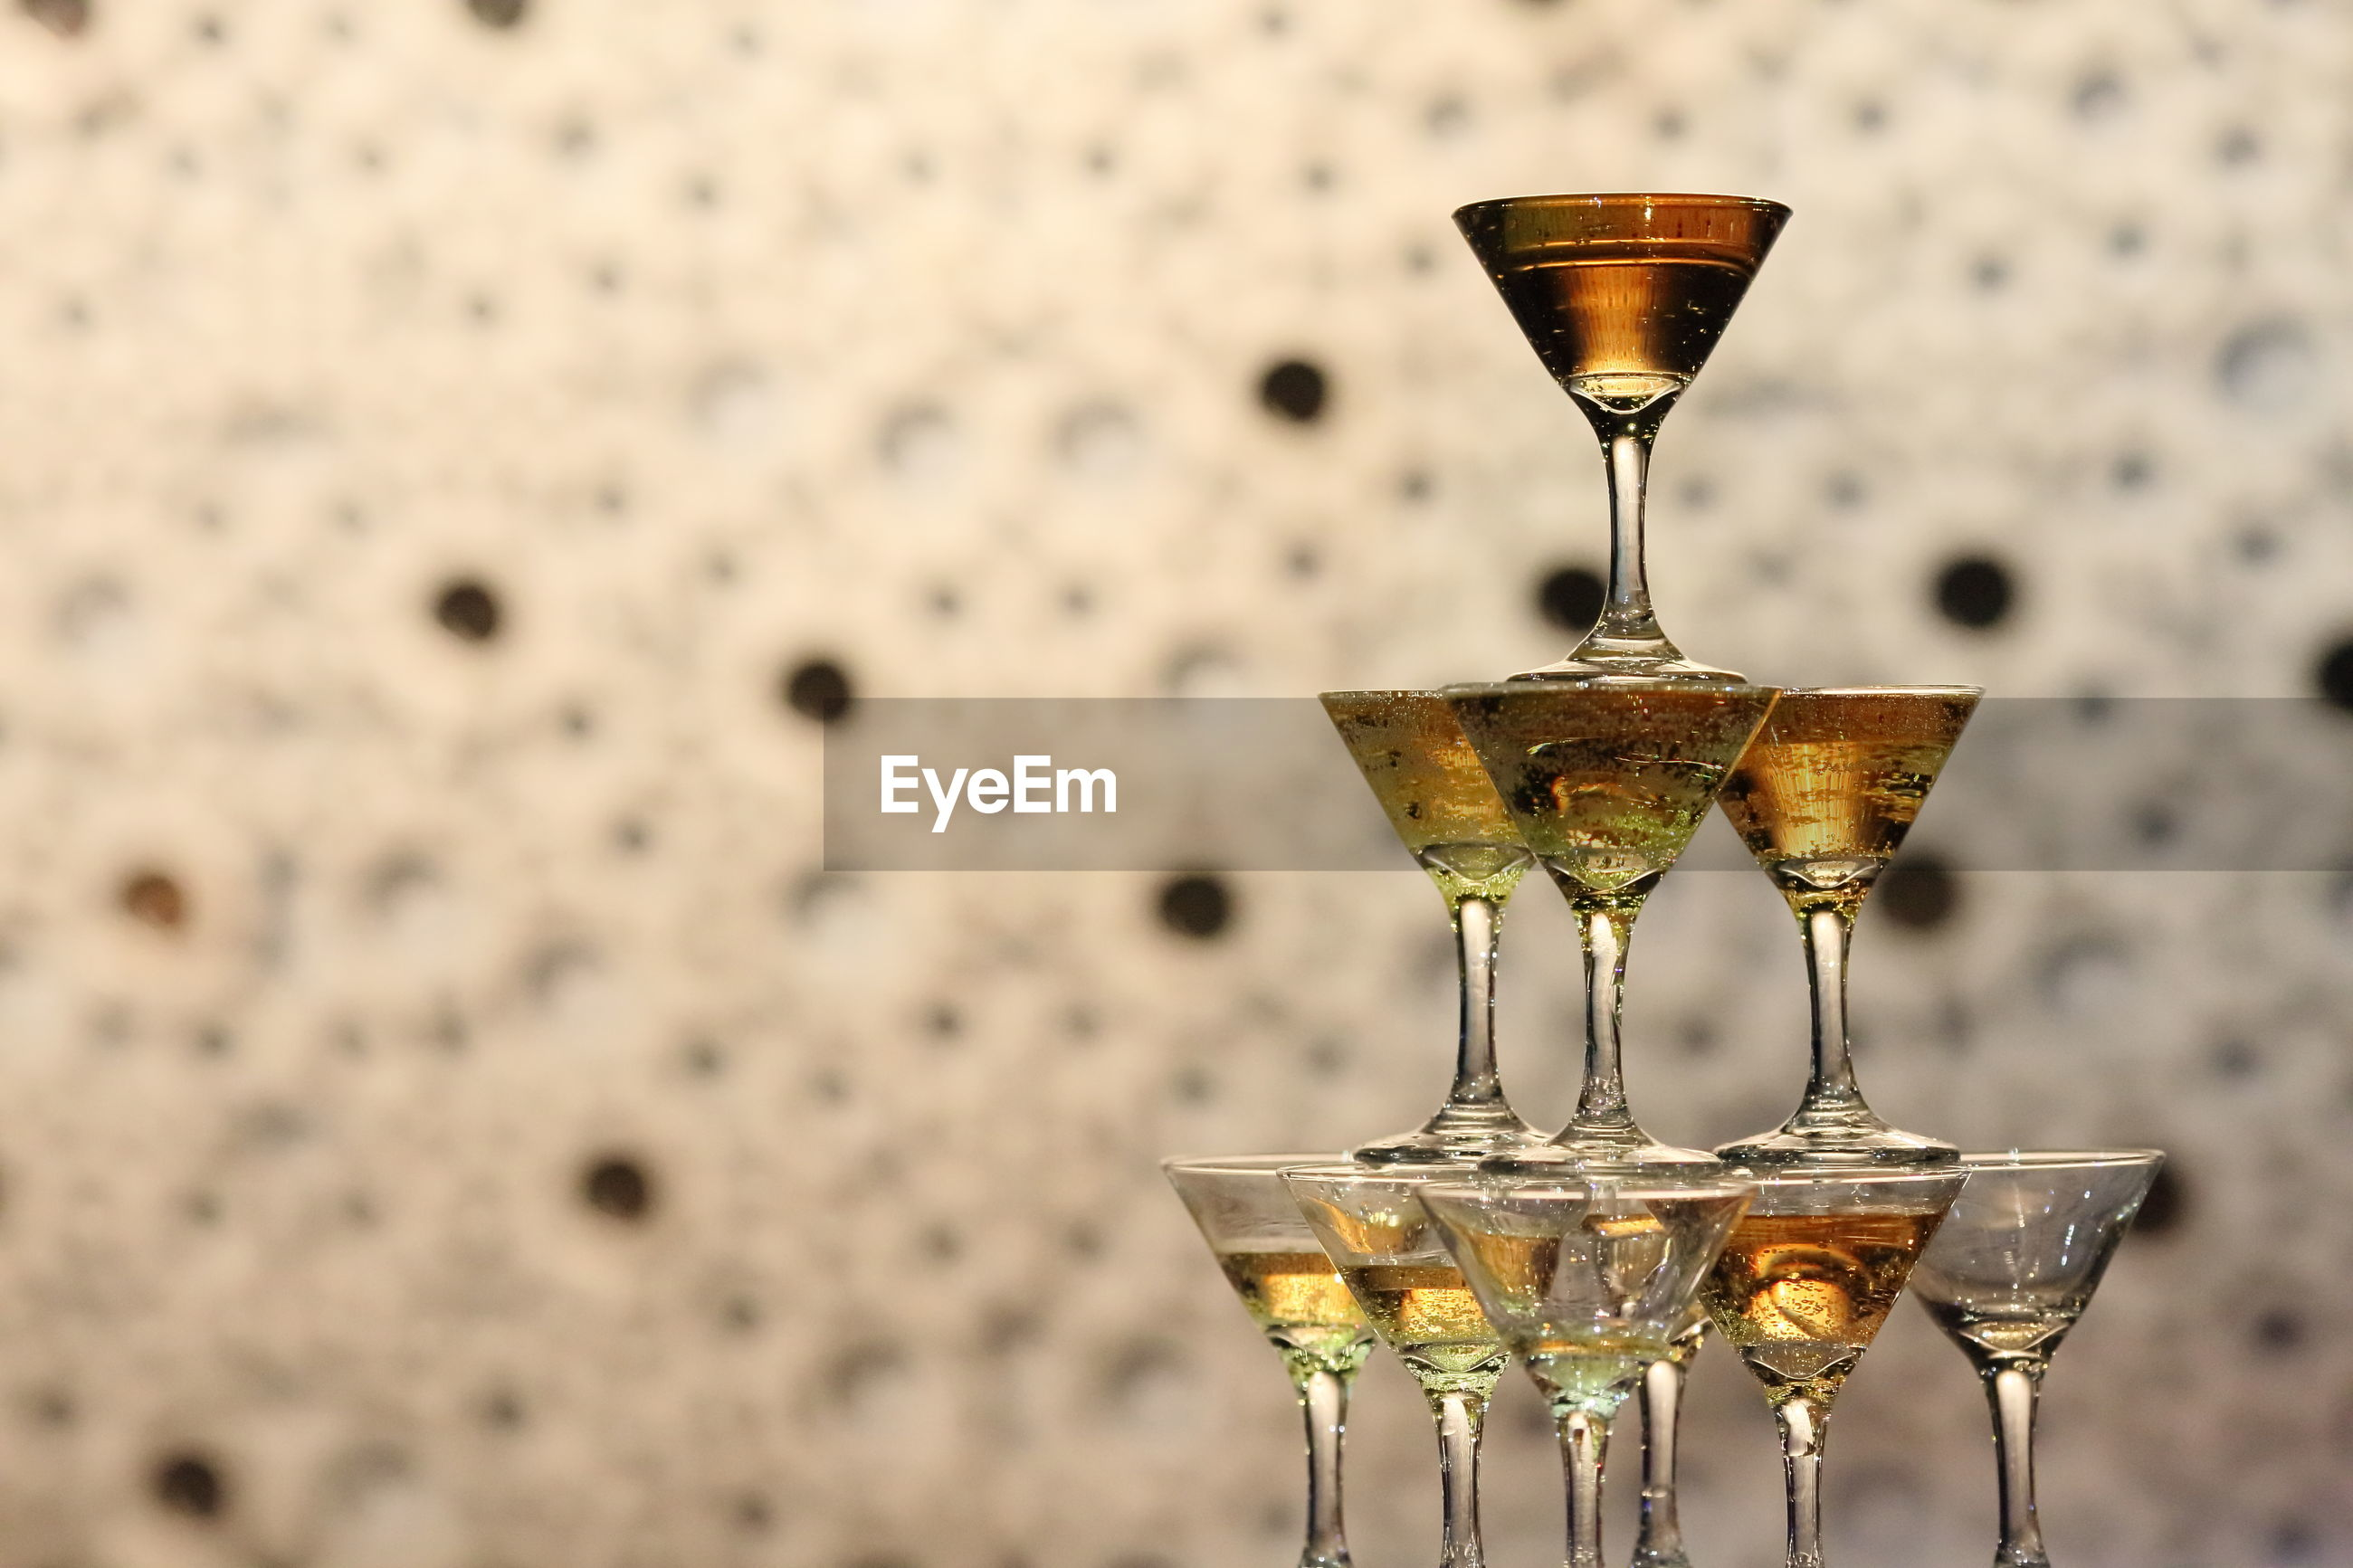 Close-up of drinking glasses